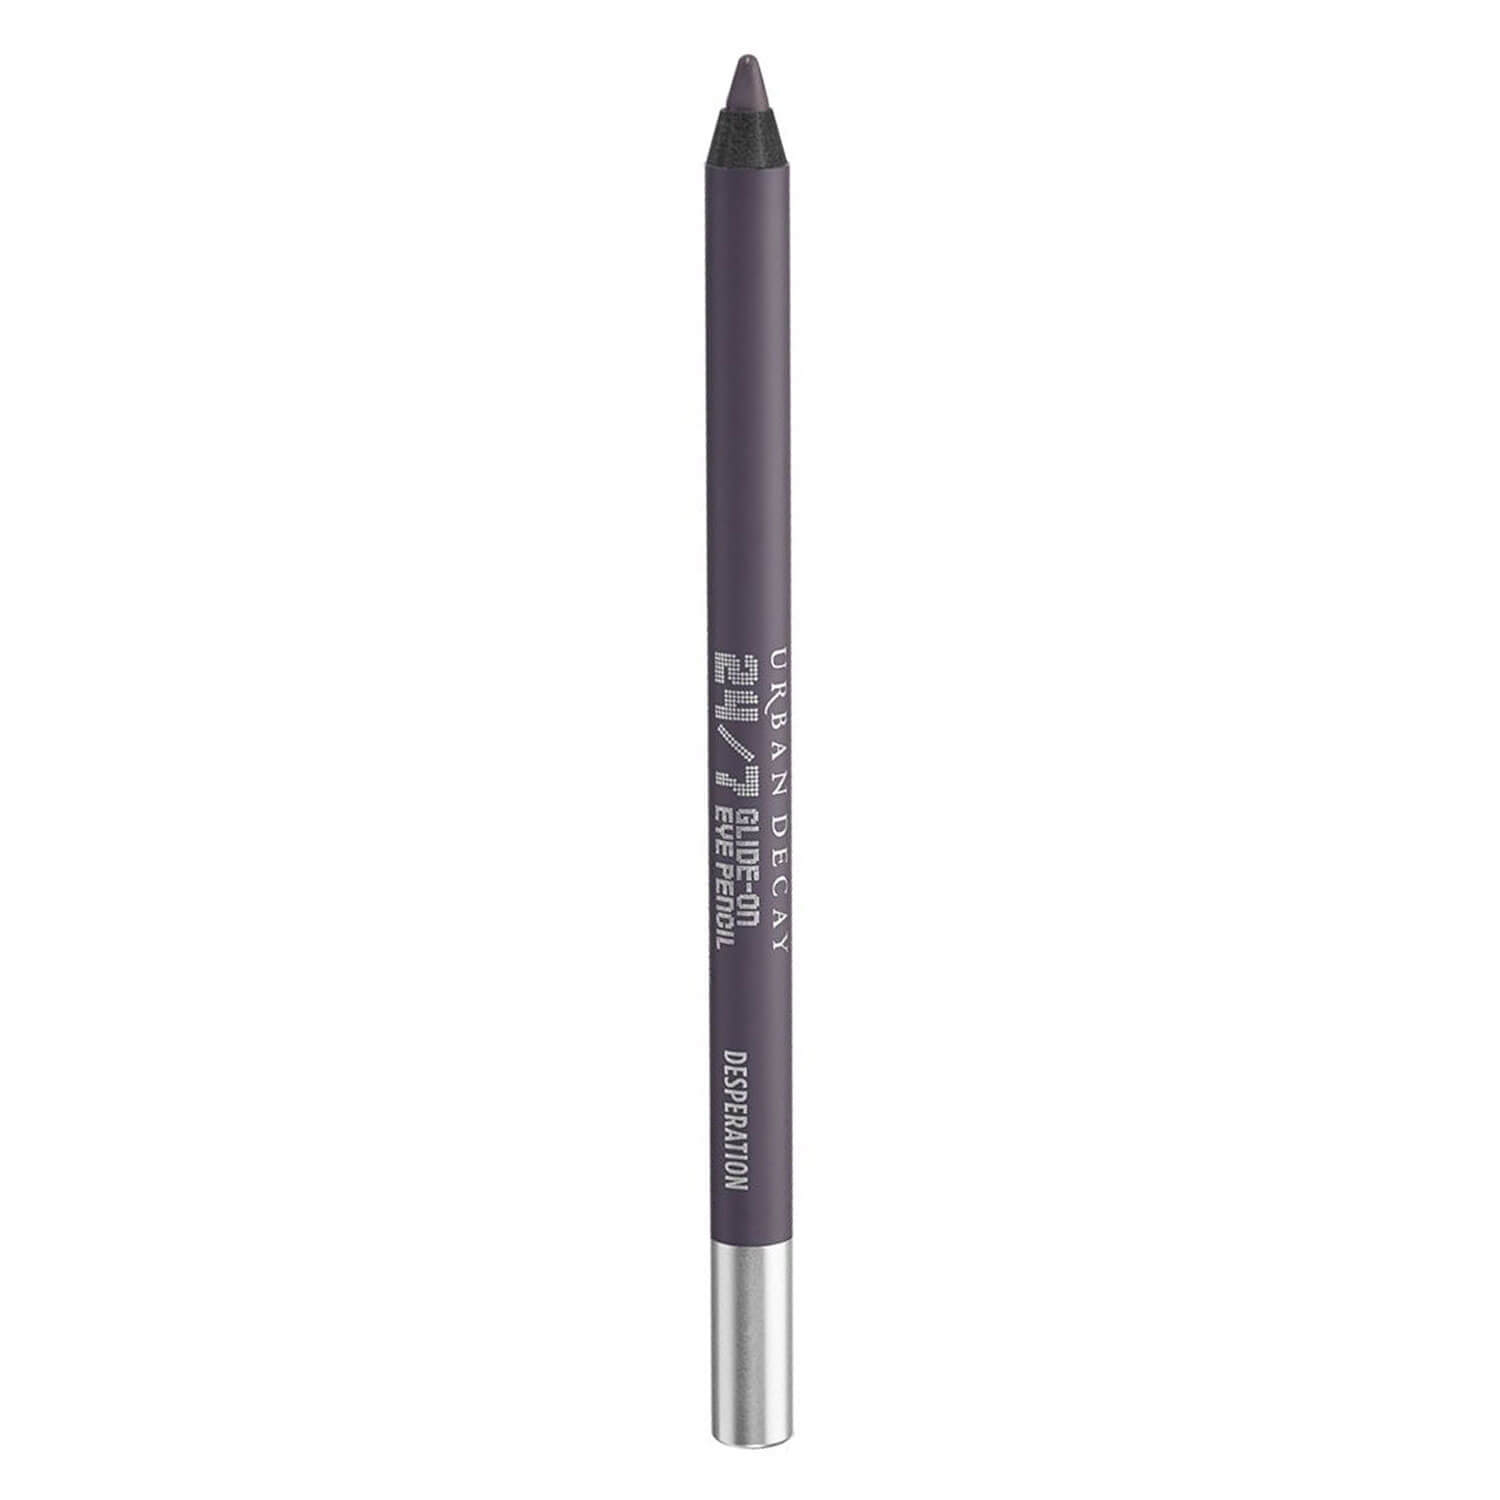 24/7 Glide-On - Eye Pencil Desperation